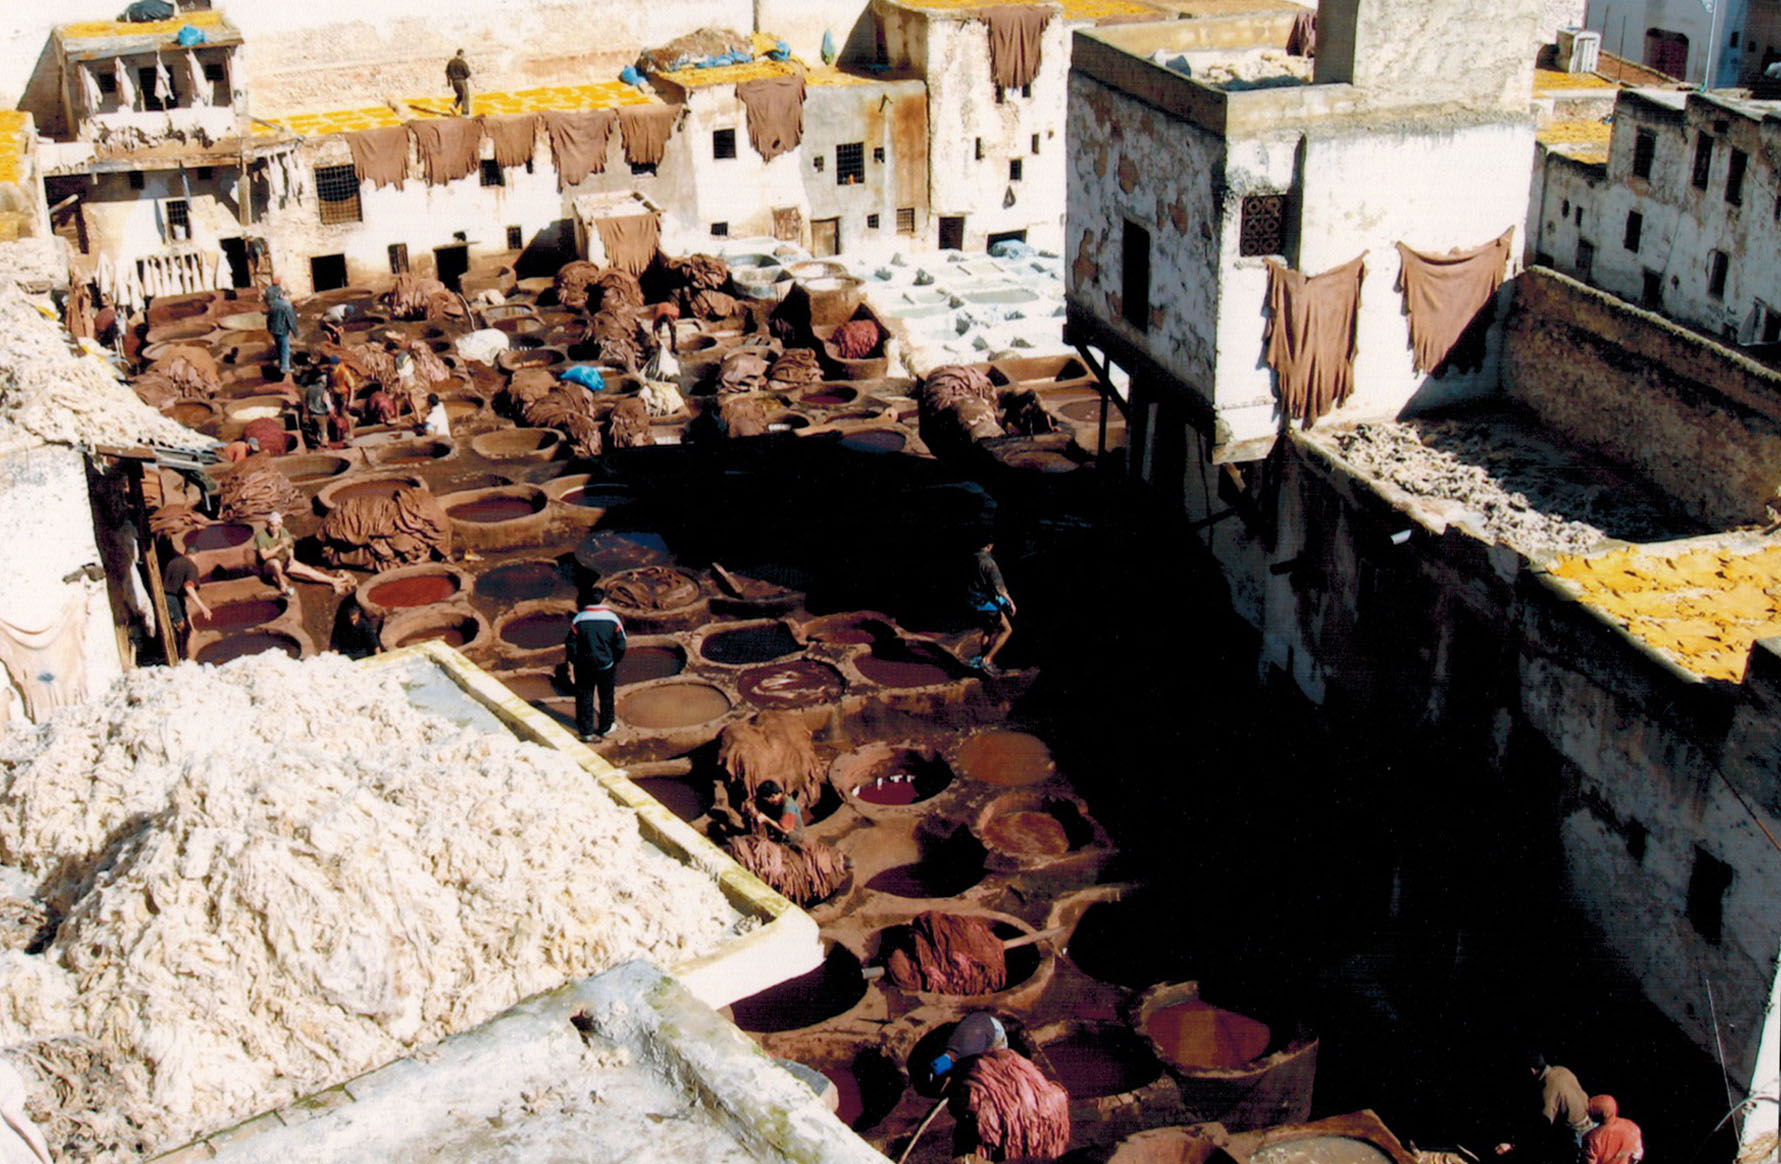 Leatherworkers at the Chouaras Tanneries of Fez, Morocco